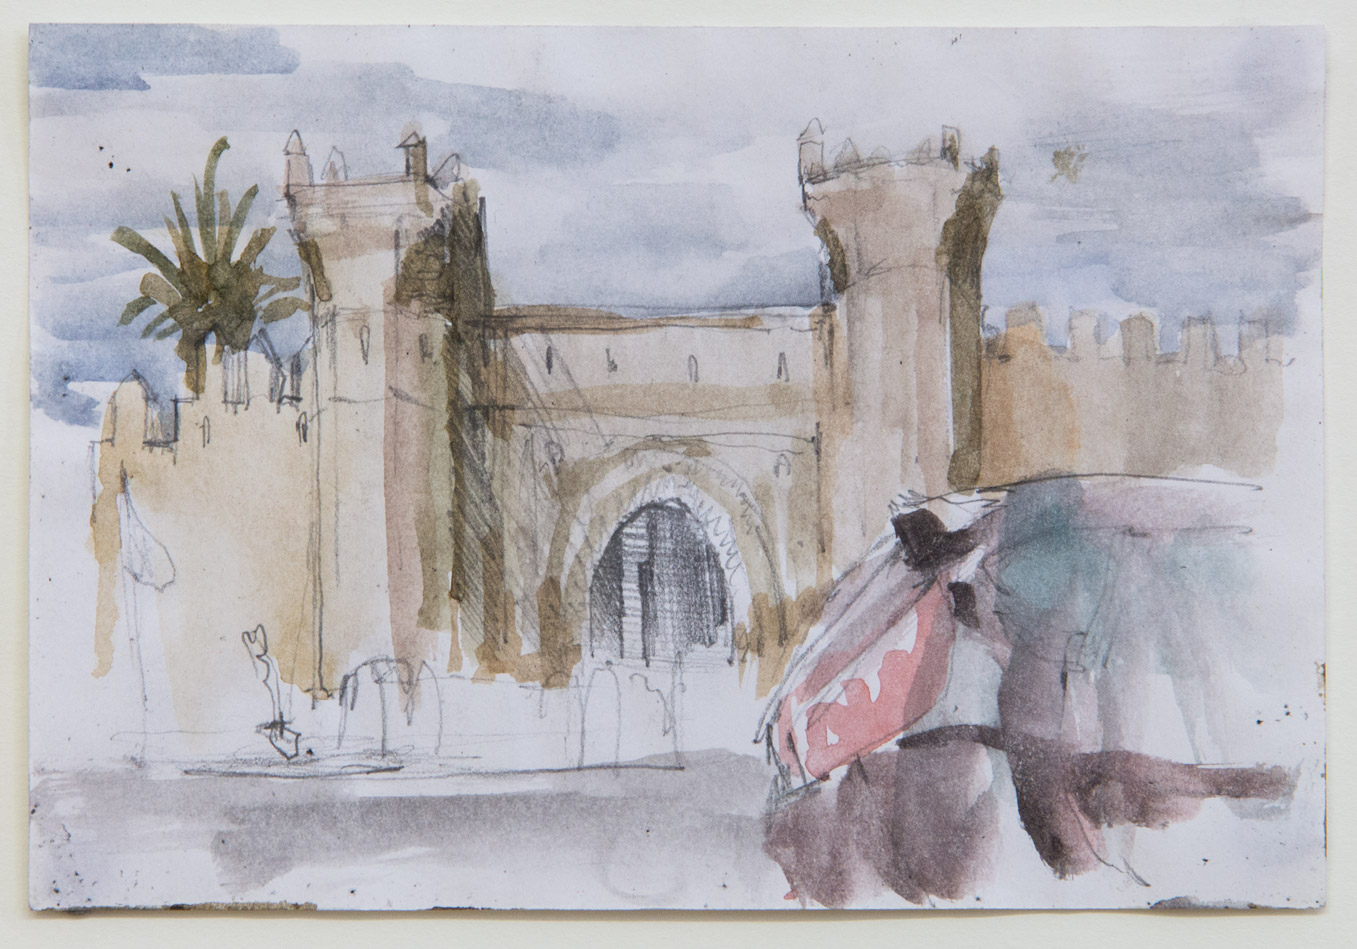 Rabat; 15 x 10 cm; watercolour and pencil on paper; 2018